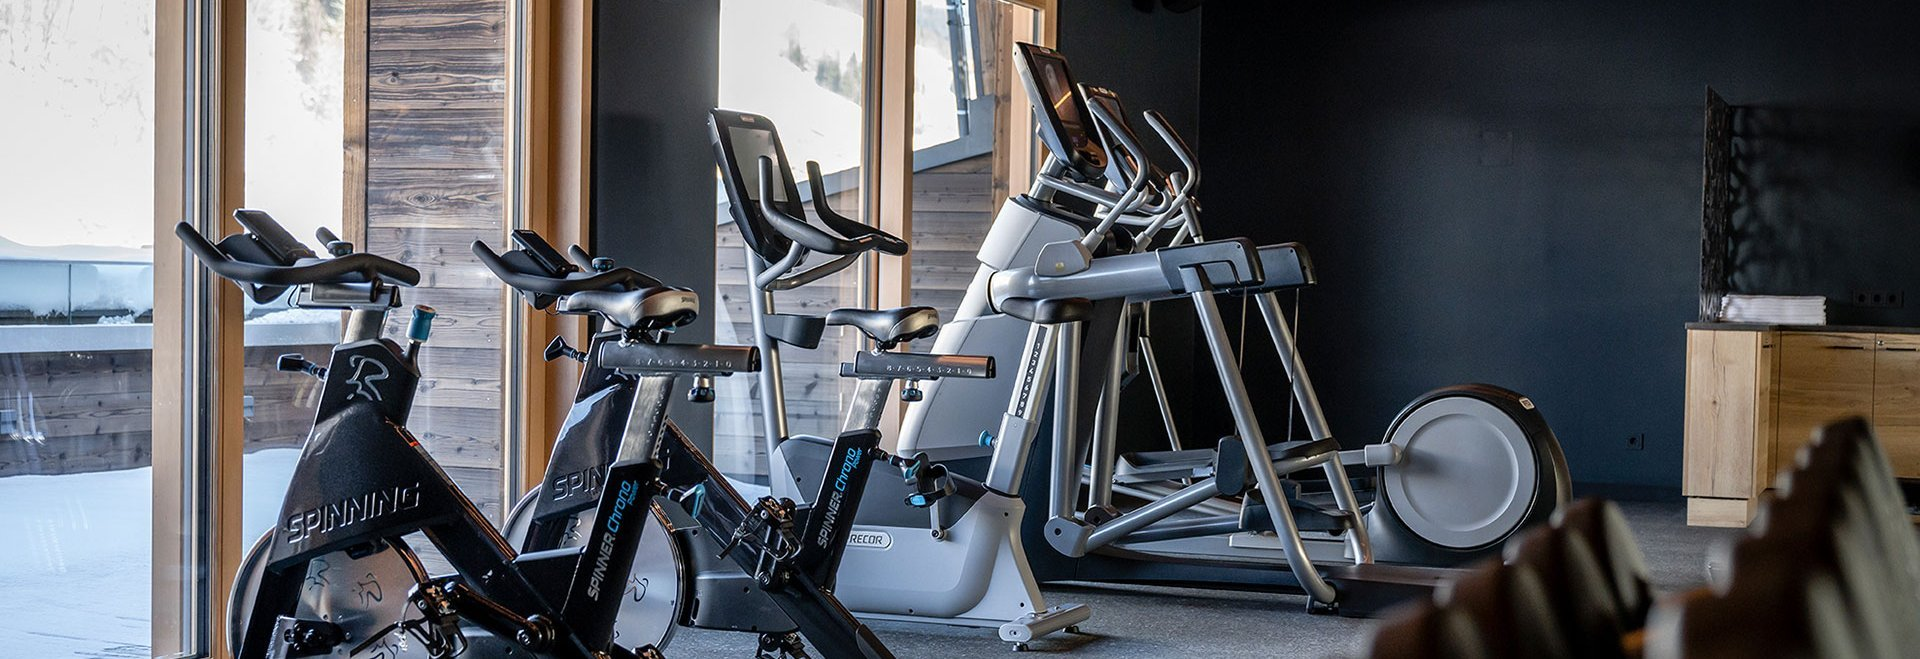 Cardio machines in the fitness lounge